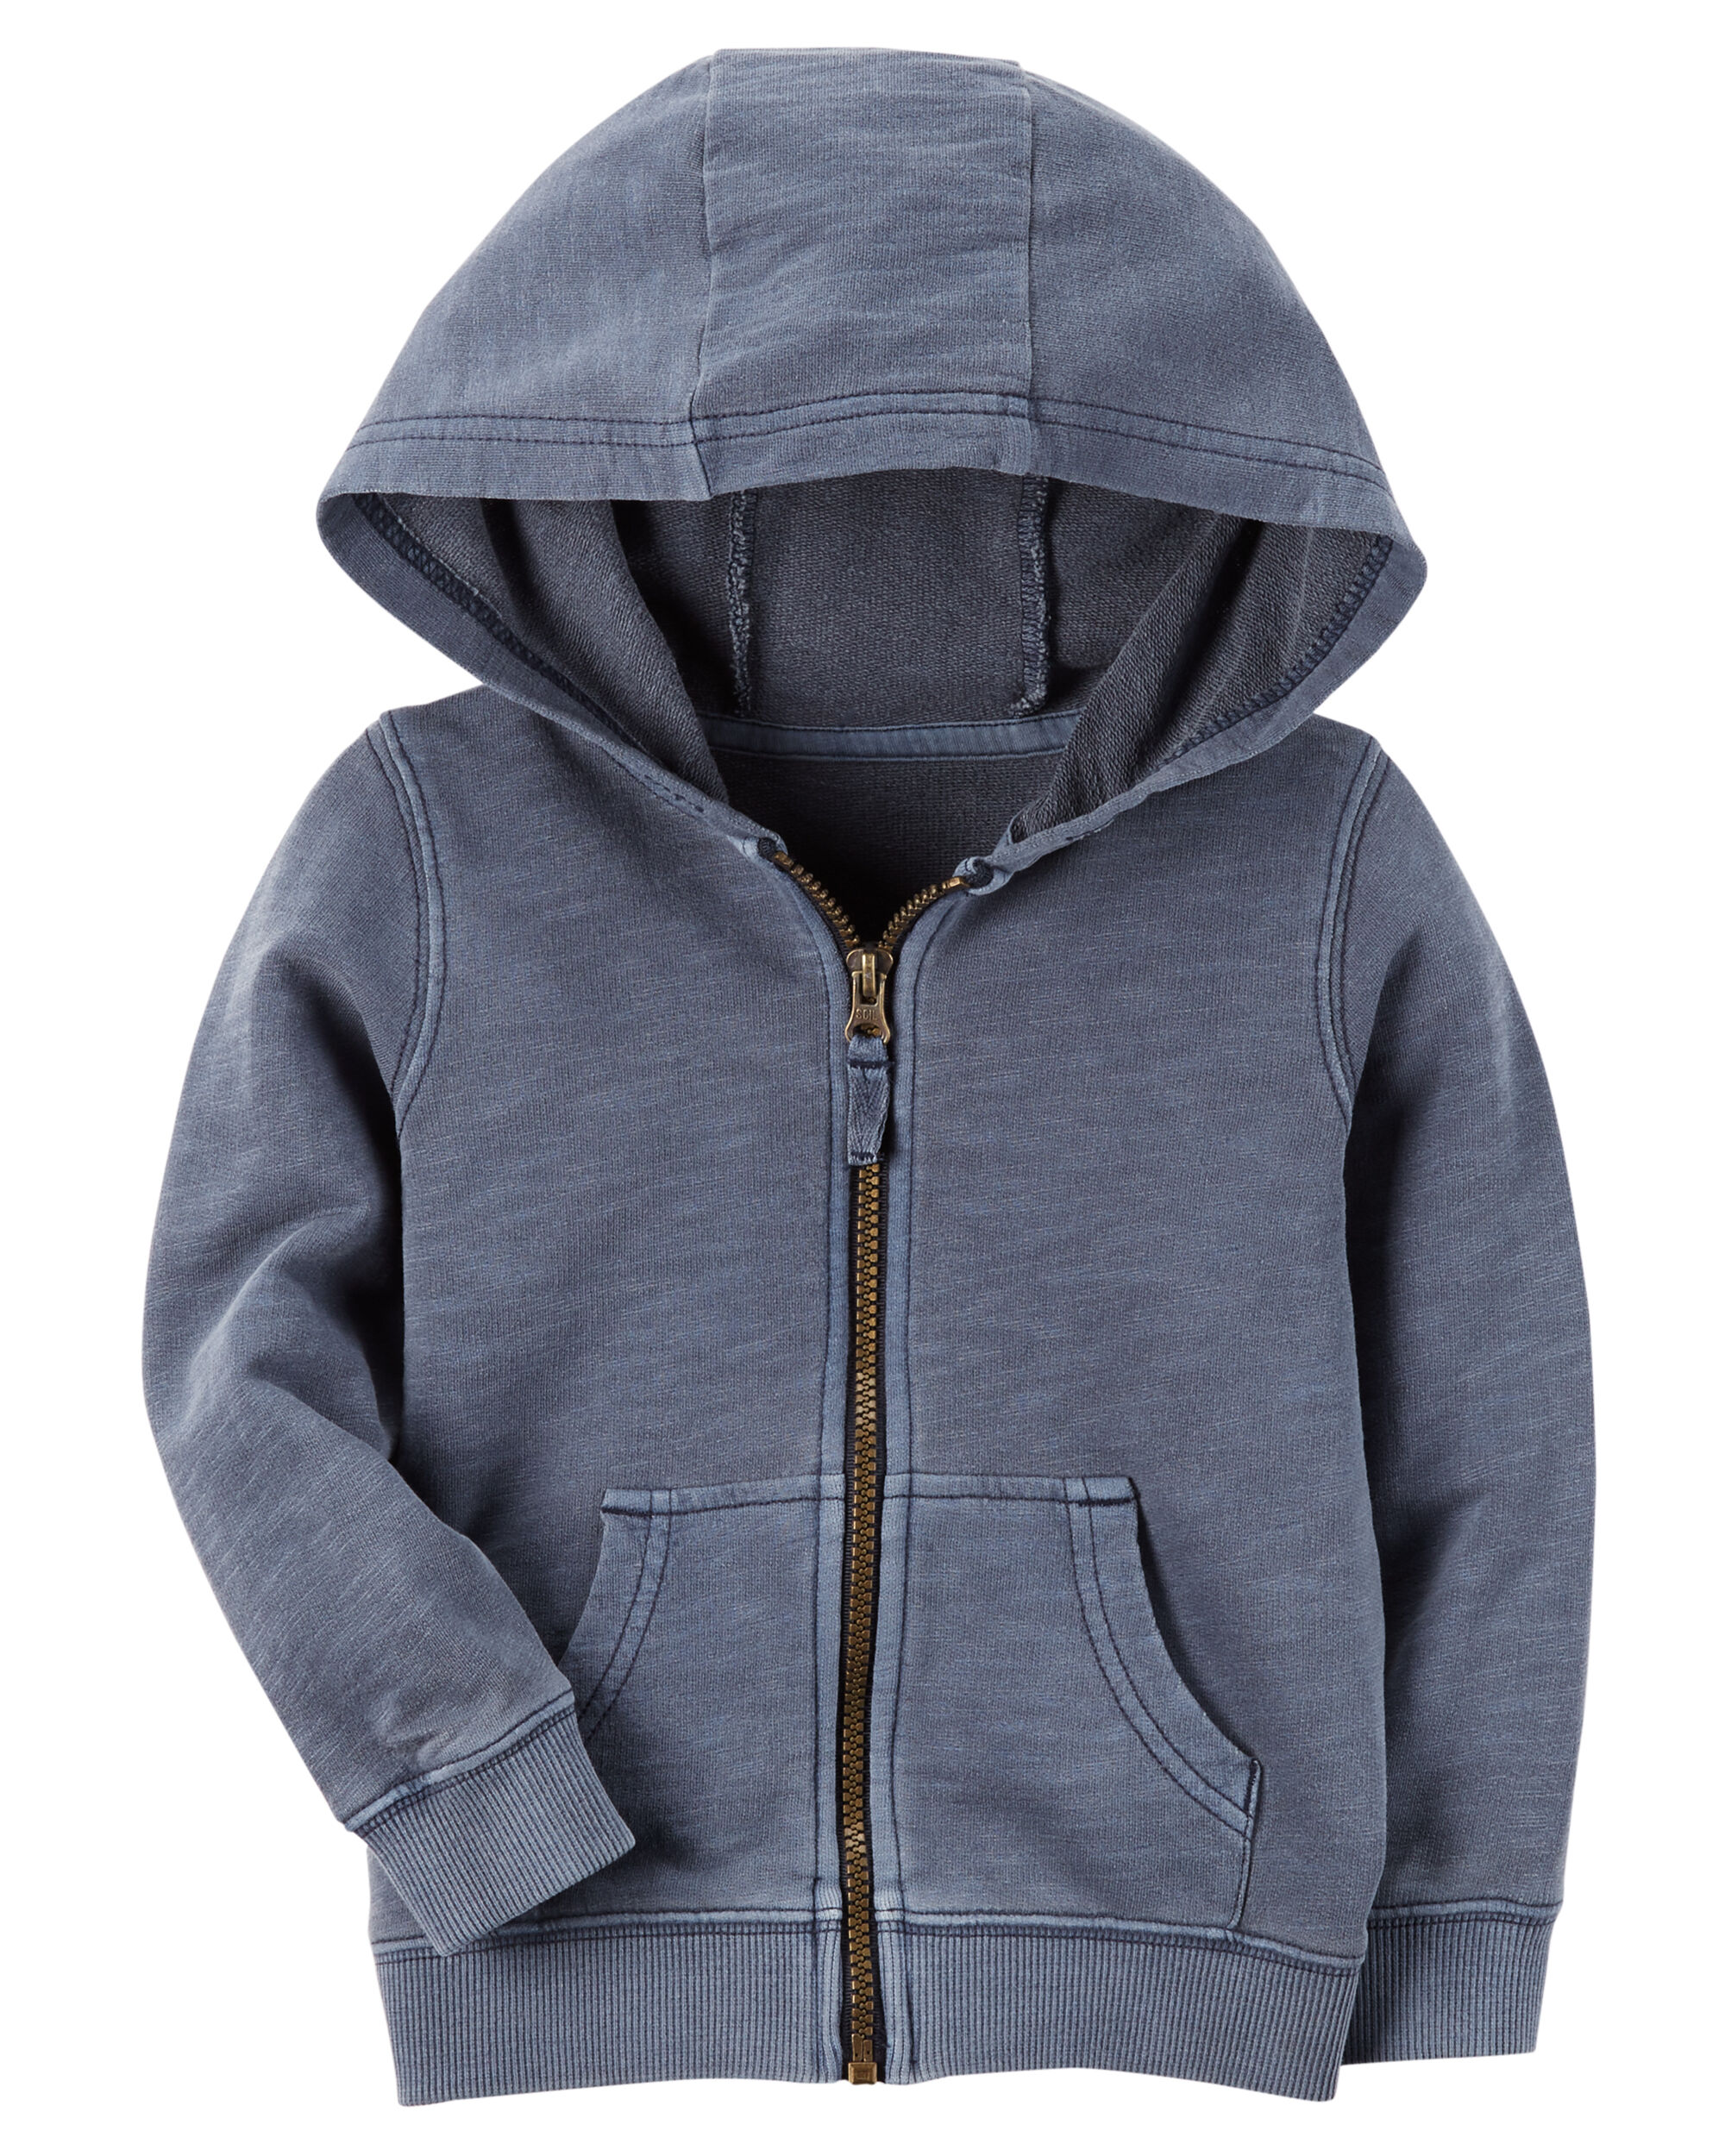 Carters OshKosh Navy French Terry Hoodie 2T